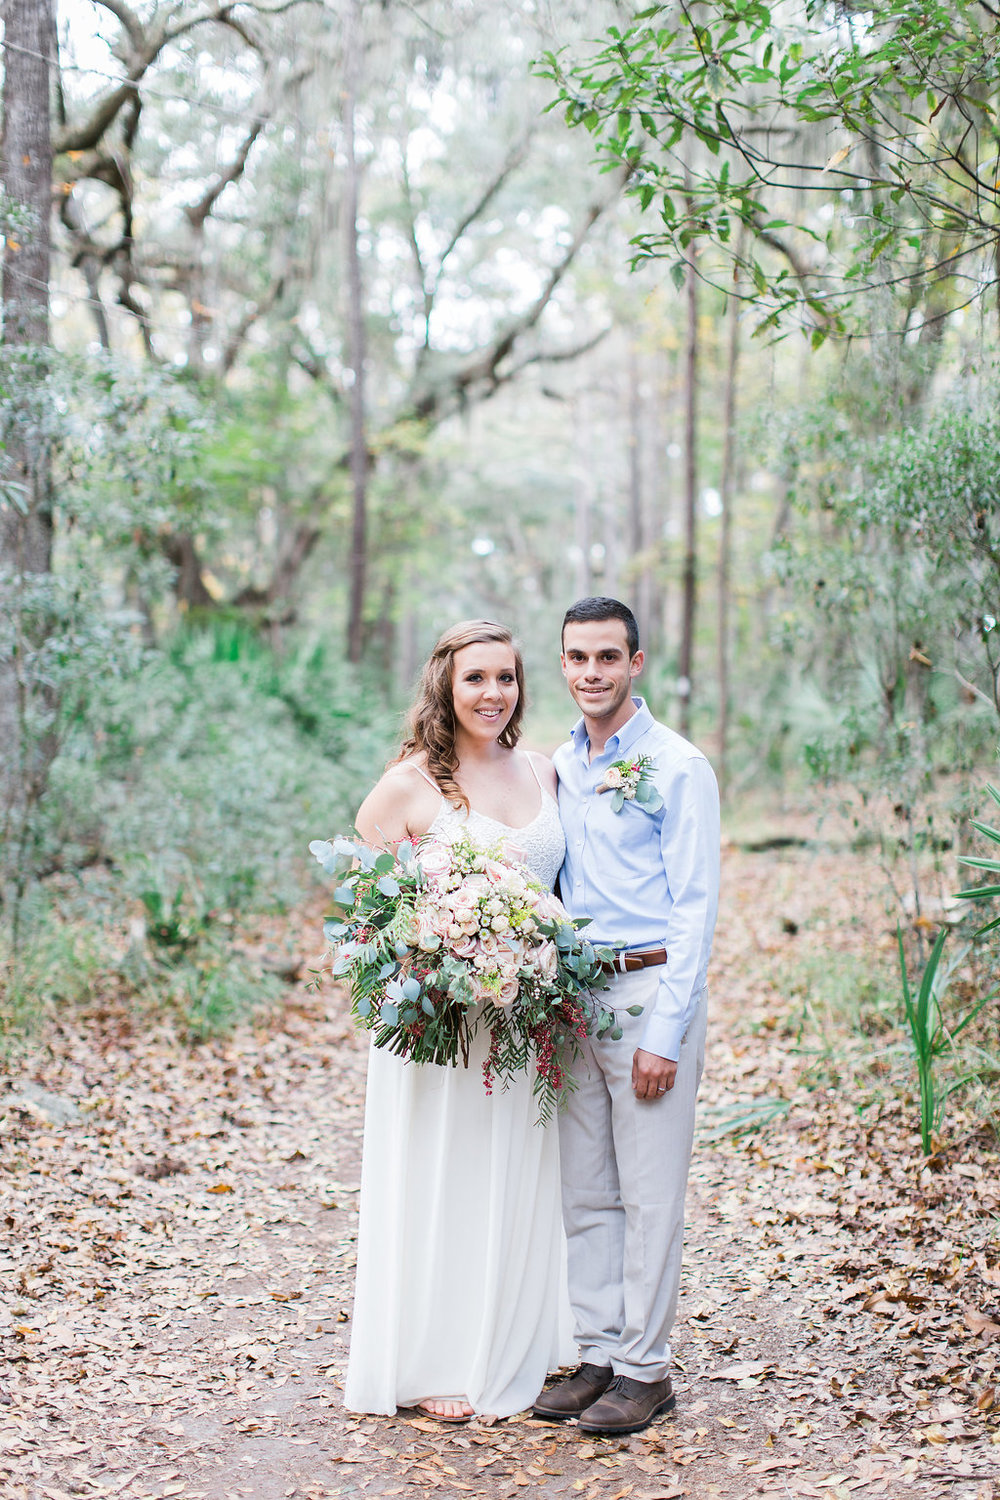 Savannah_Wedding_Photography_AptBPhotography_Elopements454.JPG